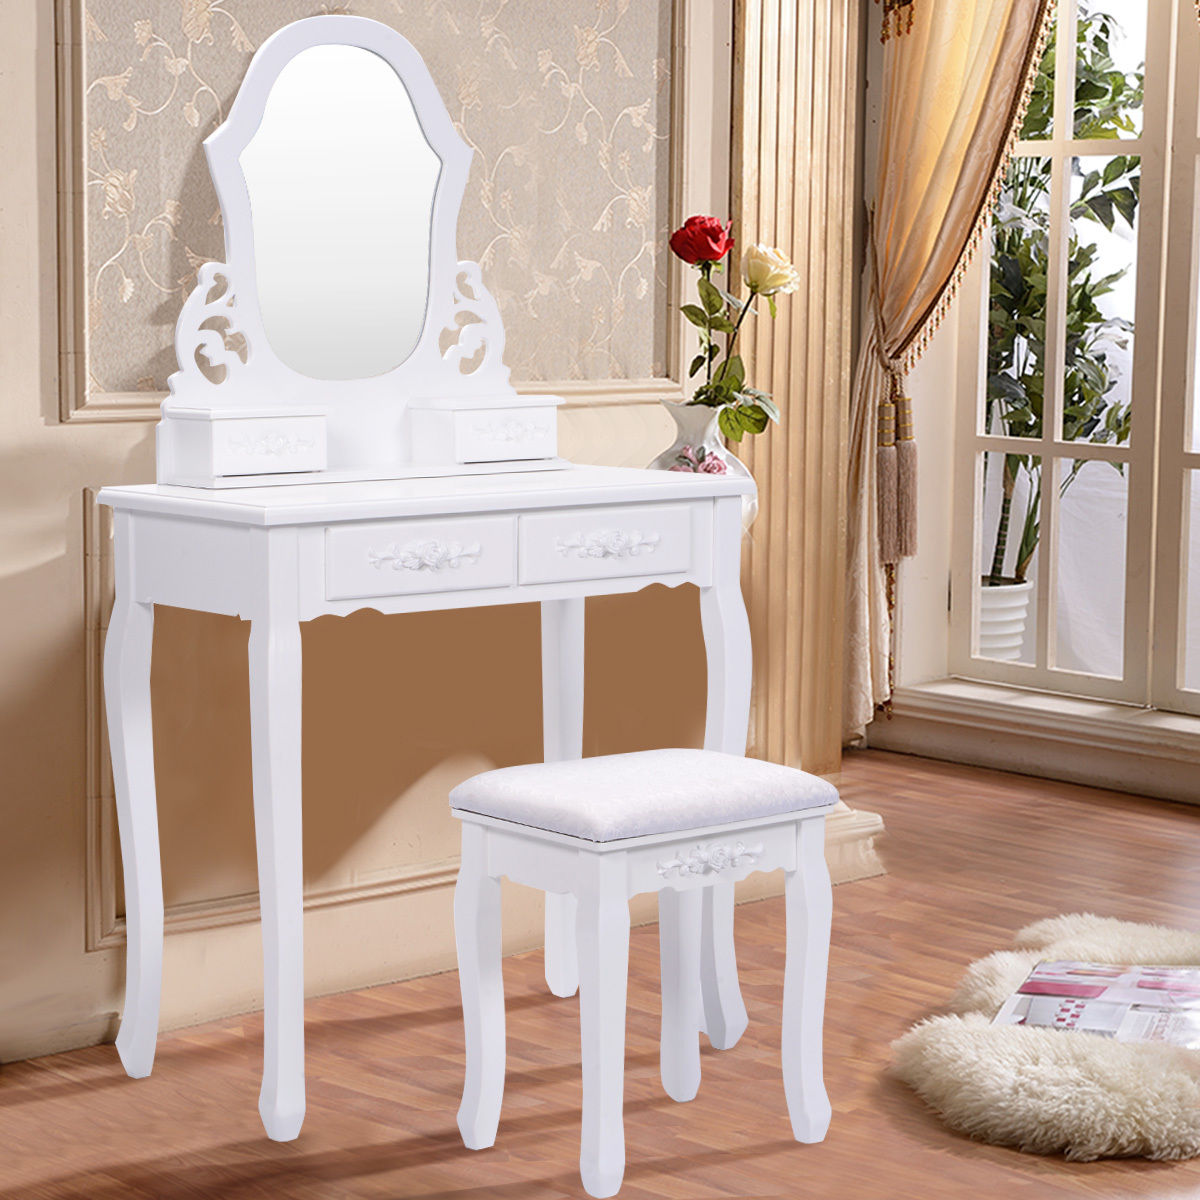 Costway White Vanity Jewelry Wooden Makeup Dressing Table Set W Stool Mirror & 4 Drawer by Costway